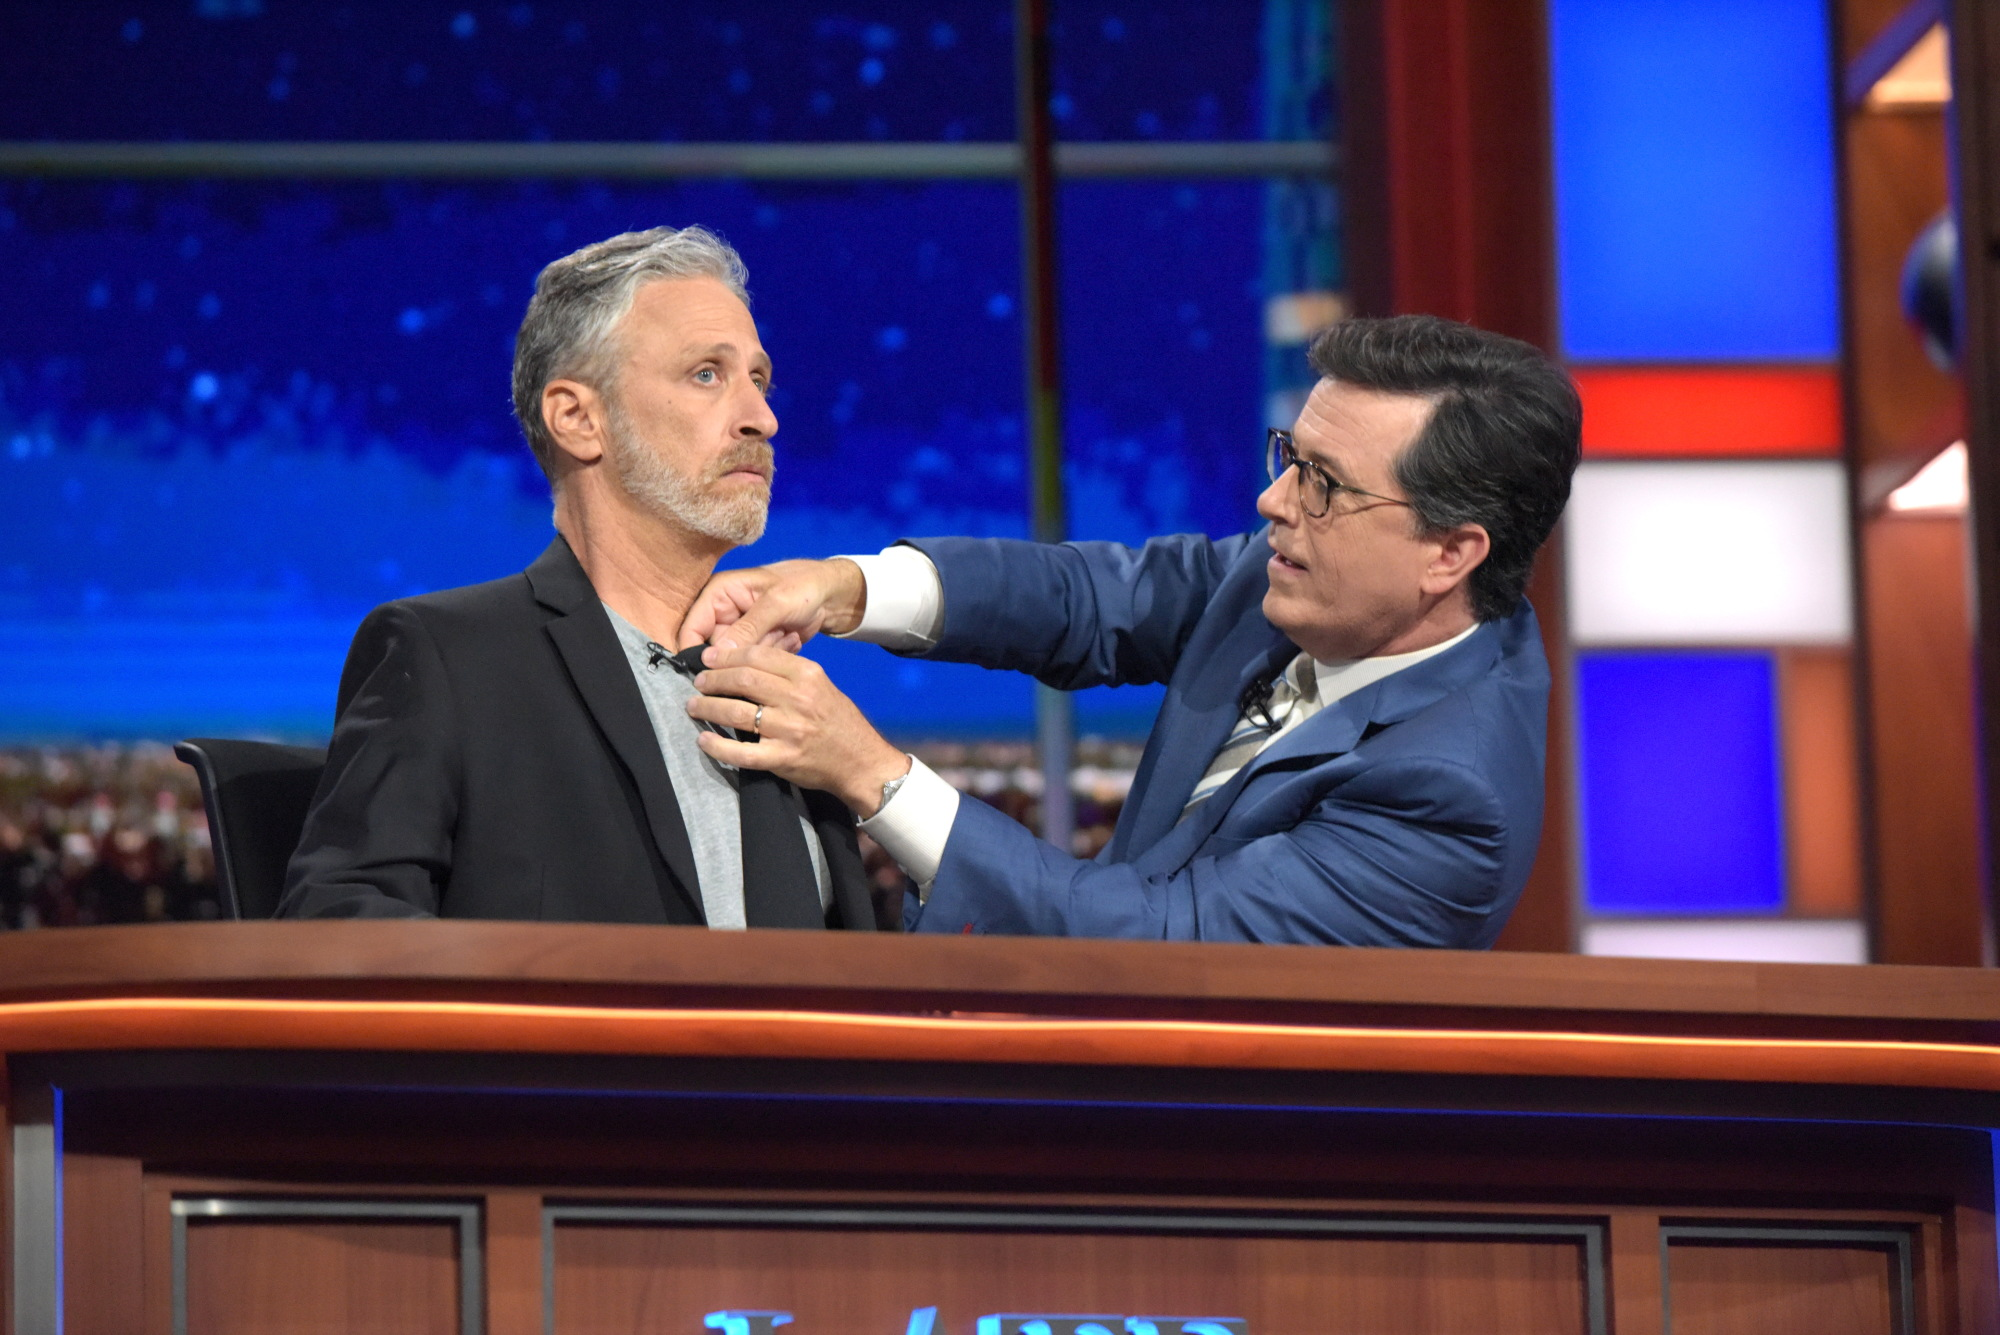 The Late Show with Stephen Colbert Thursday July 21, 2016 in New York. With guest Jon Stewart.